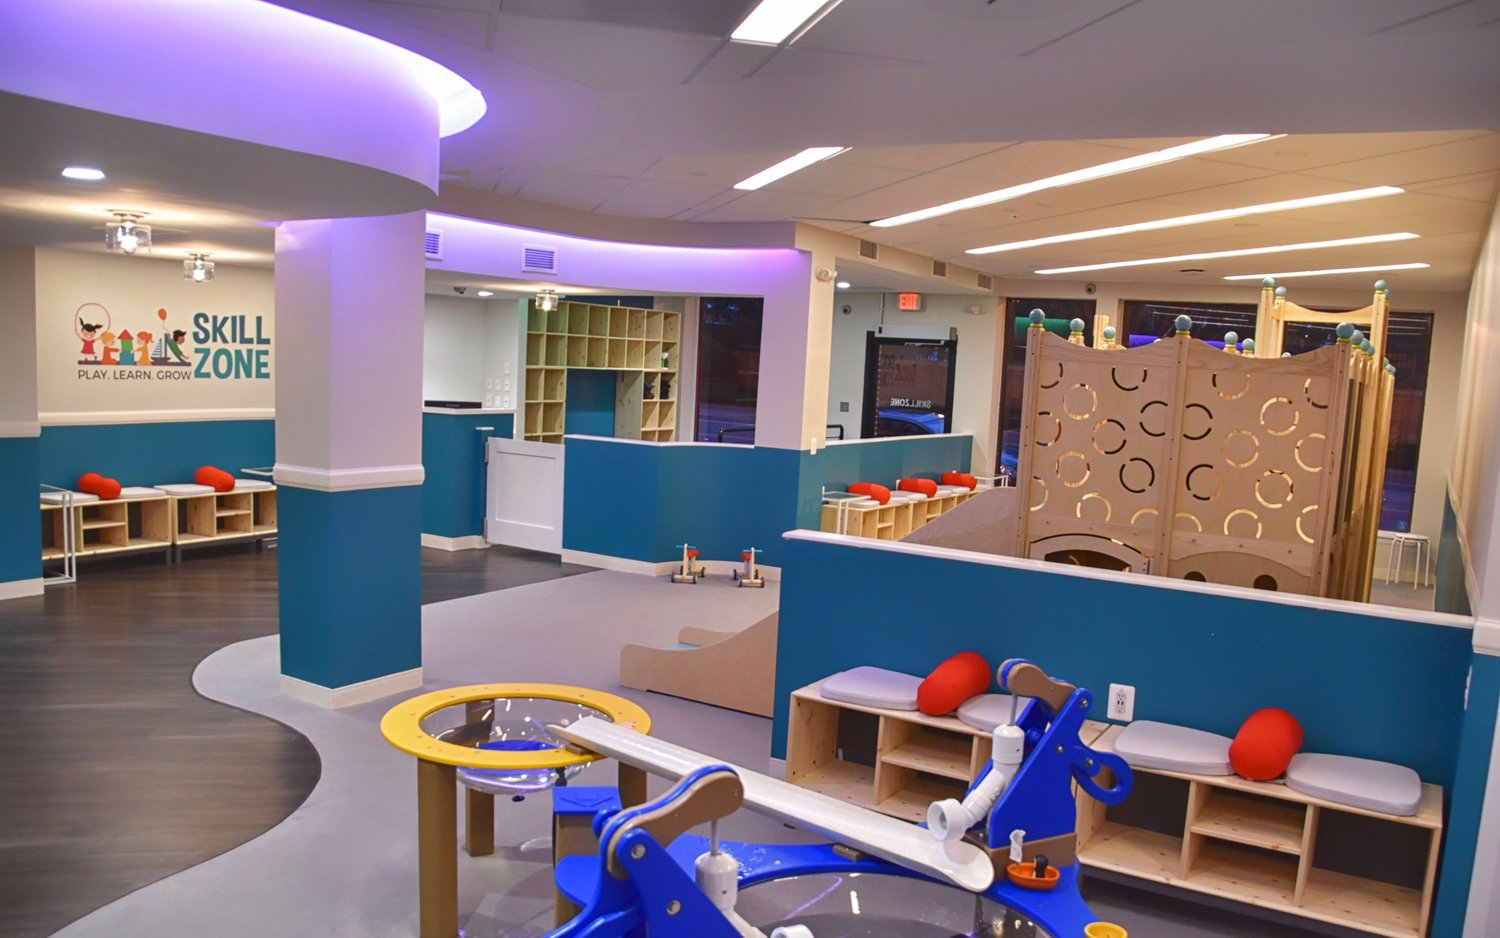 indoor options for kids in and around washington, dc - beltway bambinos